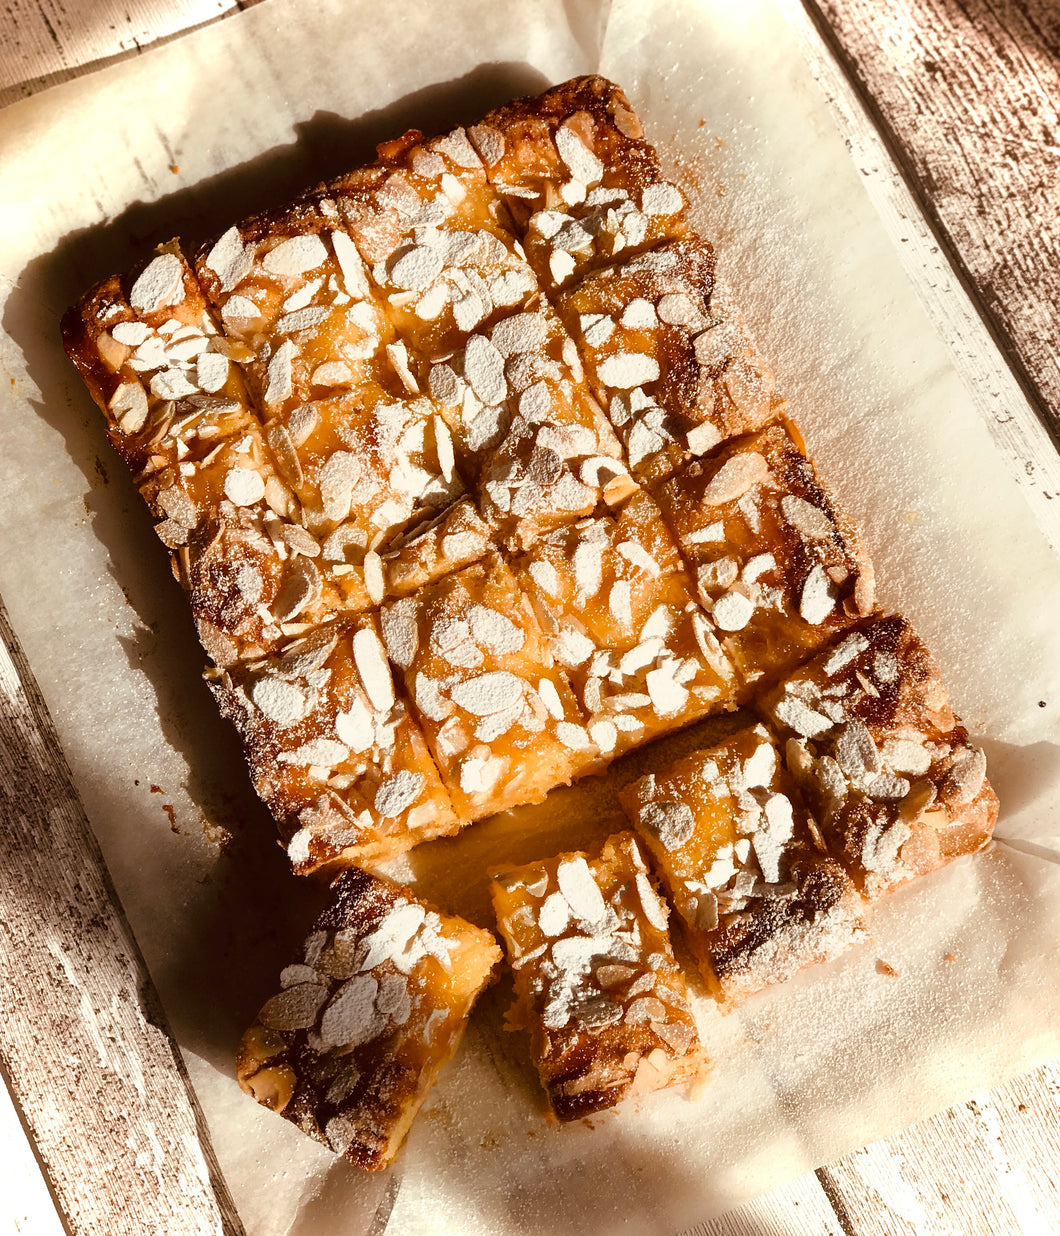 Gluten and Dairy Free Lemon and Almond Torta - Julia + son